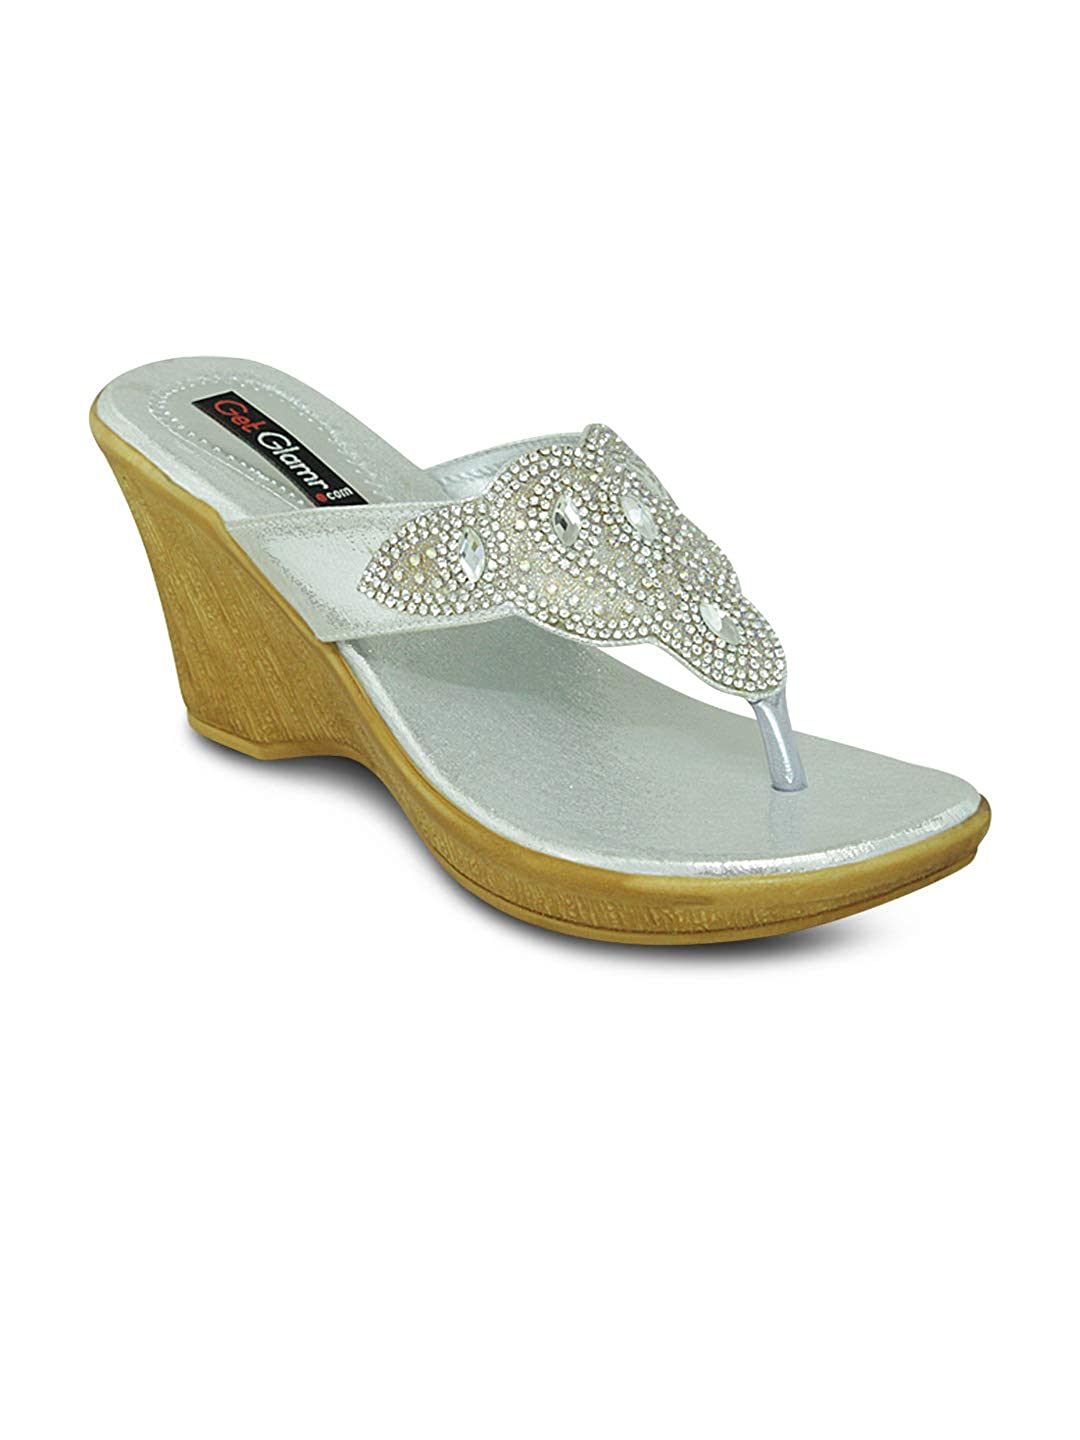 Get Glamr Women Silver Wedges Buy Online At Low Prices In